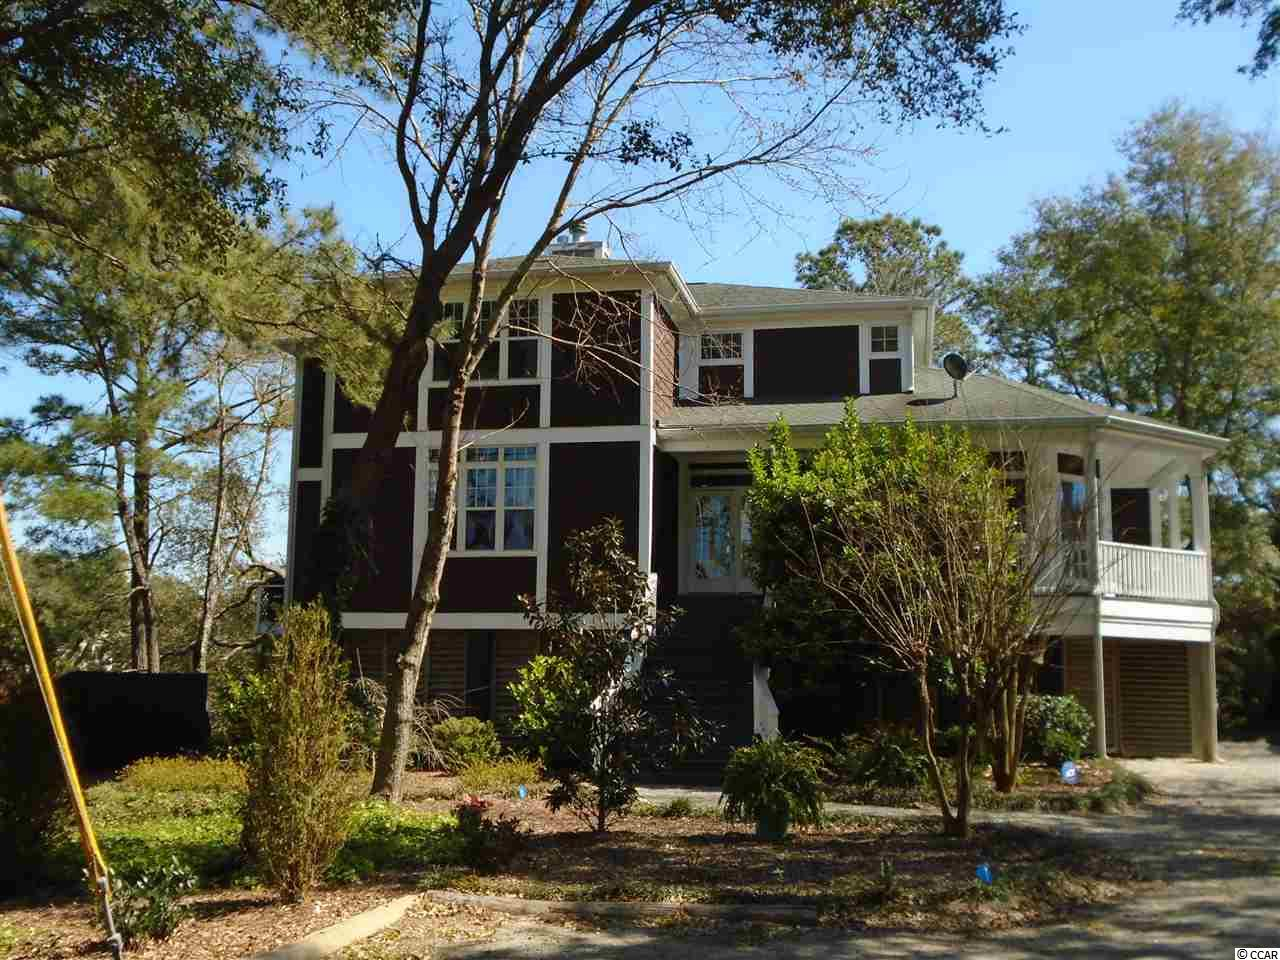 Welcome to 13760 Ocean Highway 17. The home has three bedrooms, 2.5 baths complete with fireplace, hardwood floors, screened porch with amazing marsh views. The natural landscaping makes for a maintenance free yard and a bird watcher's paradise. There is also a small dock.  No HOA. Plenty of outdoor space underneath the home to welcome family and friends.  Two new HVAC systems in 2017, hot water heater 2018, kitchen appliances 2017.  This private home is also convenient to shopping, restaurants and the beach is just a mile away!